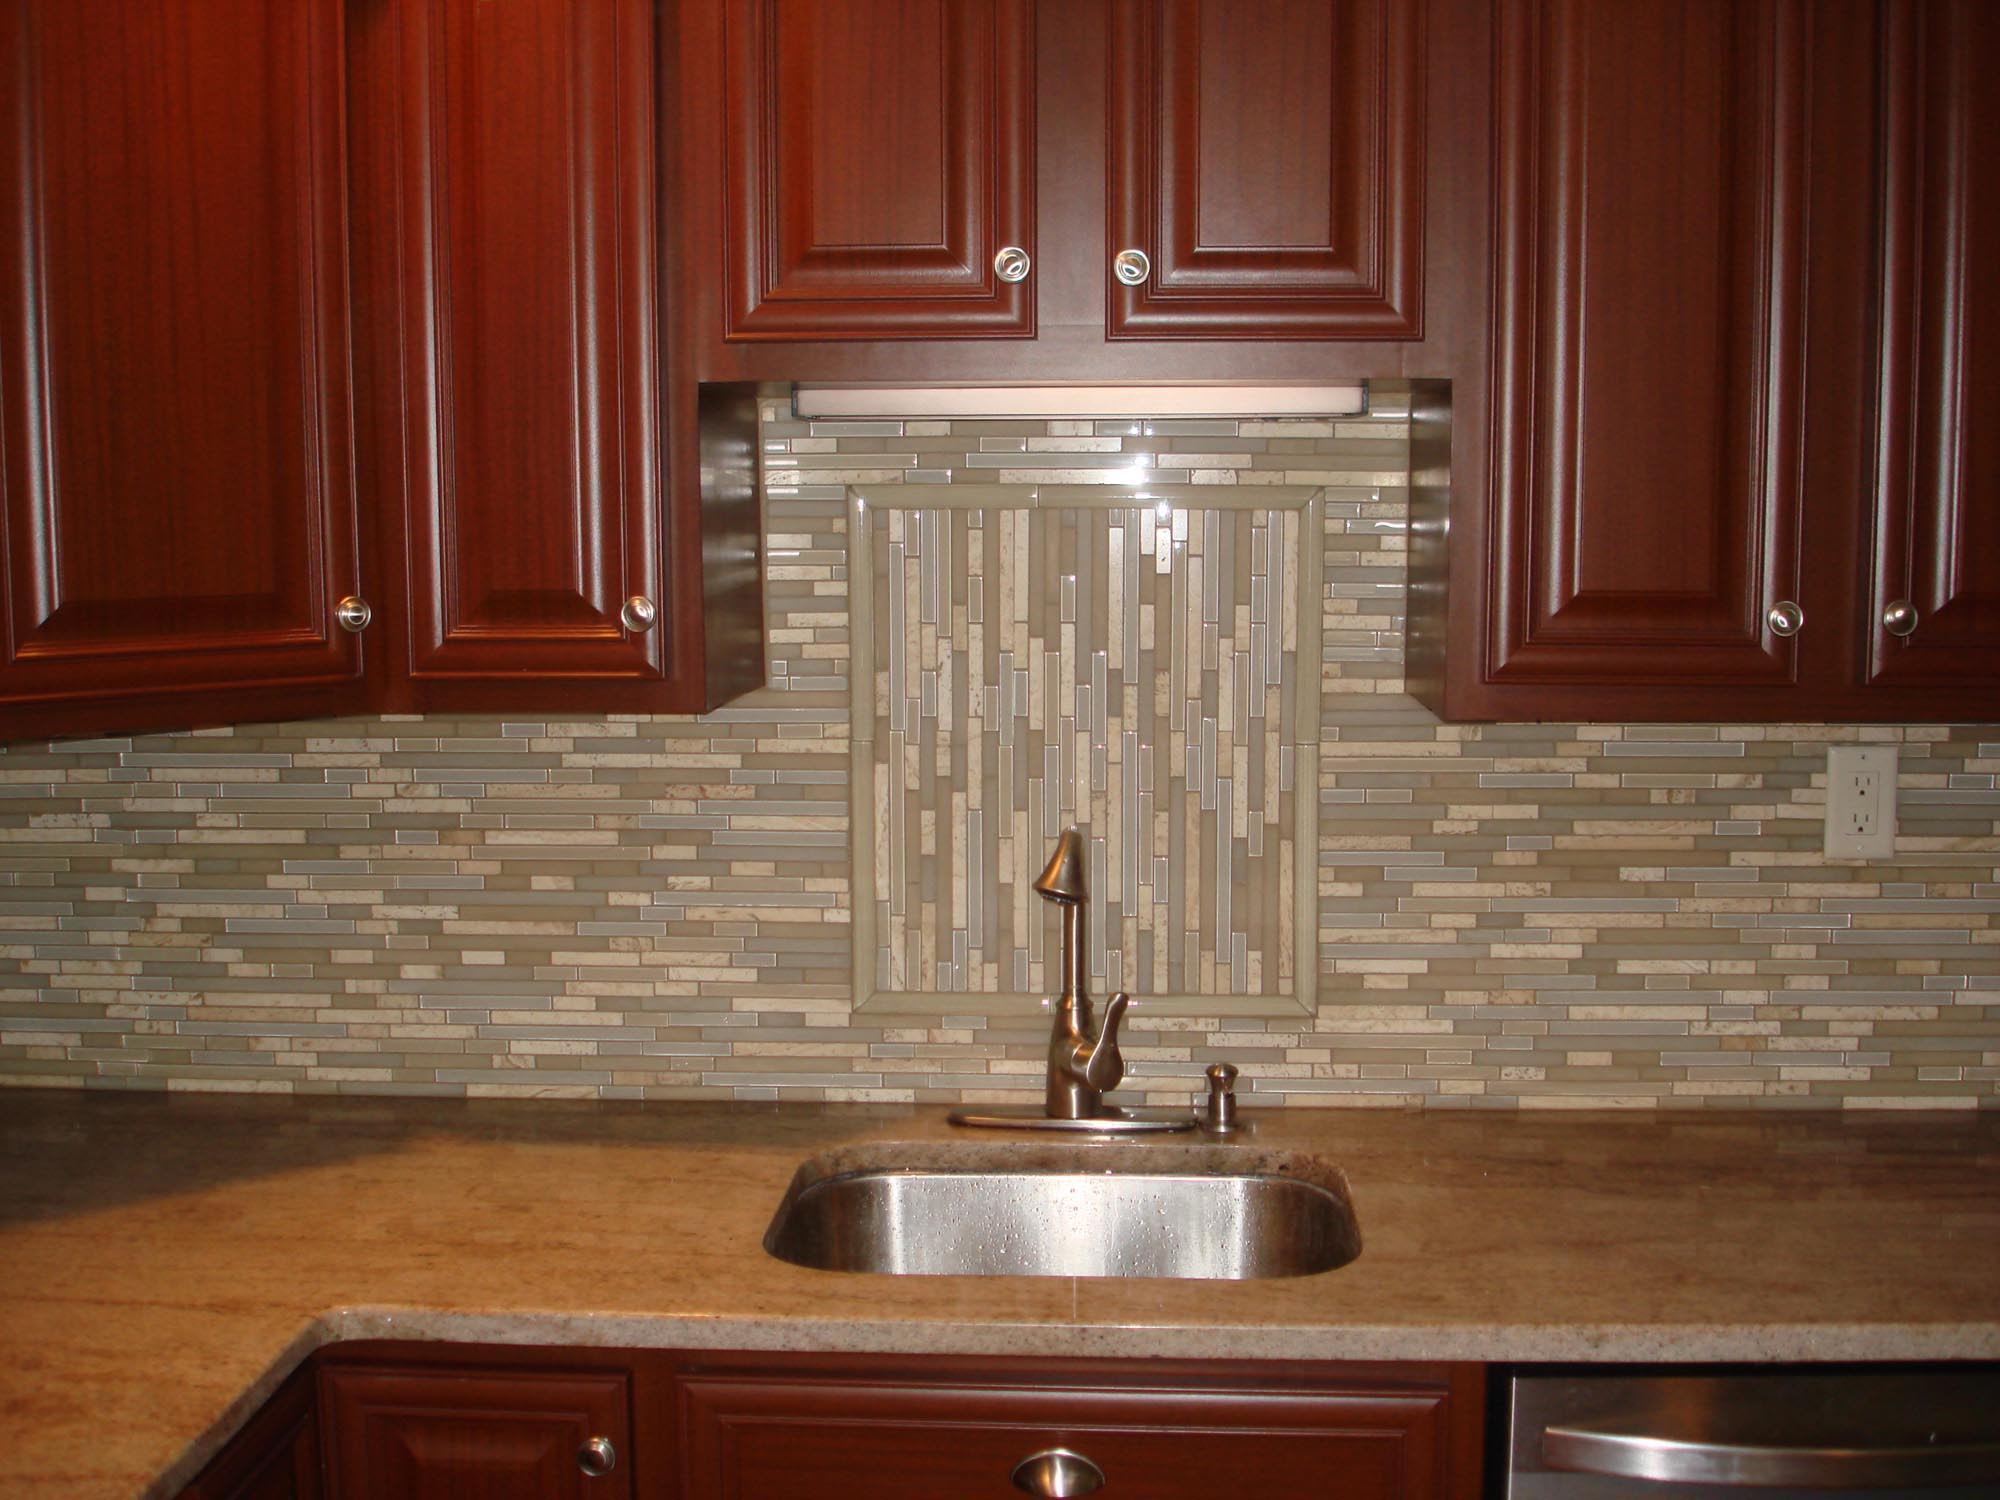 Glass stone mosaic kitchen backsplash photo marazzi pictures to pin on - Stone And Glass Backsplash New Jersey Custom Tile Pictures To Pin On Attractive